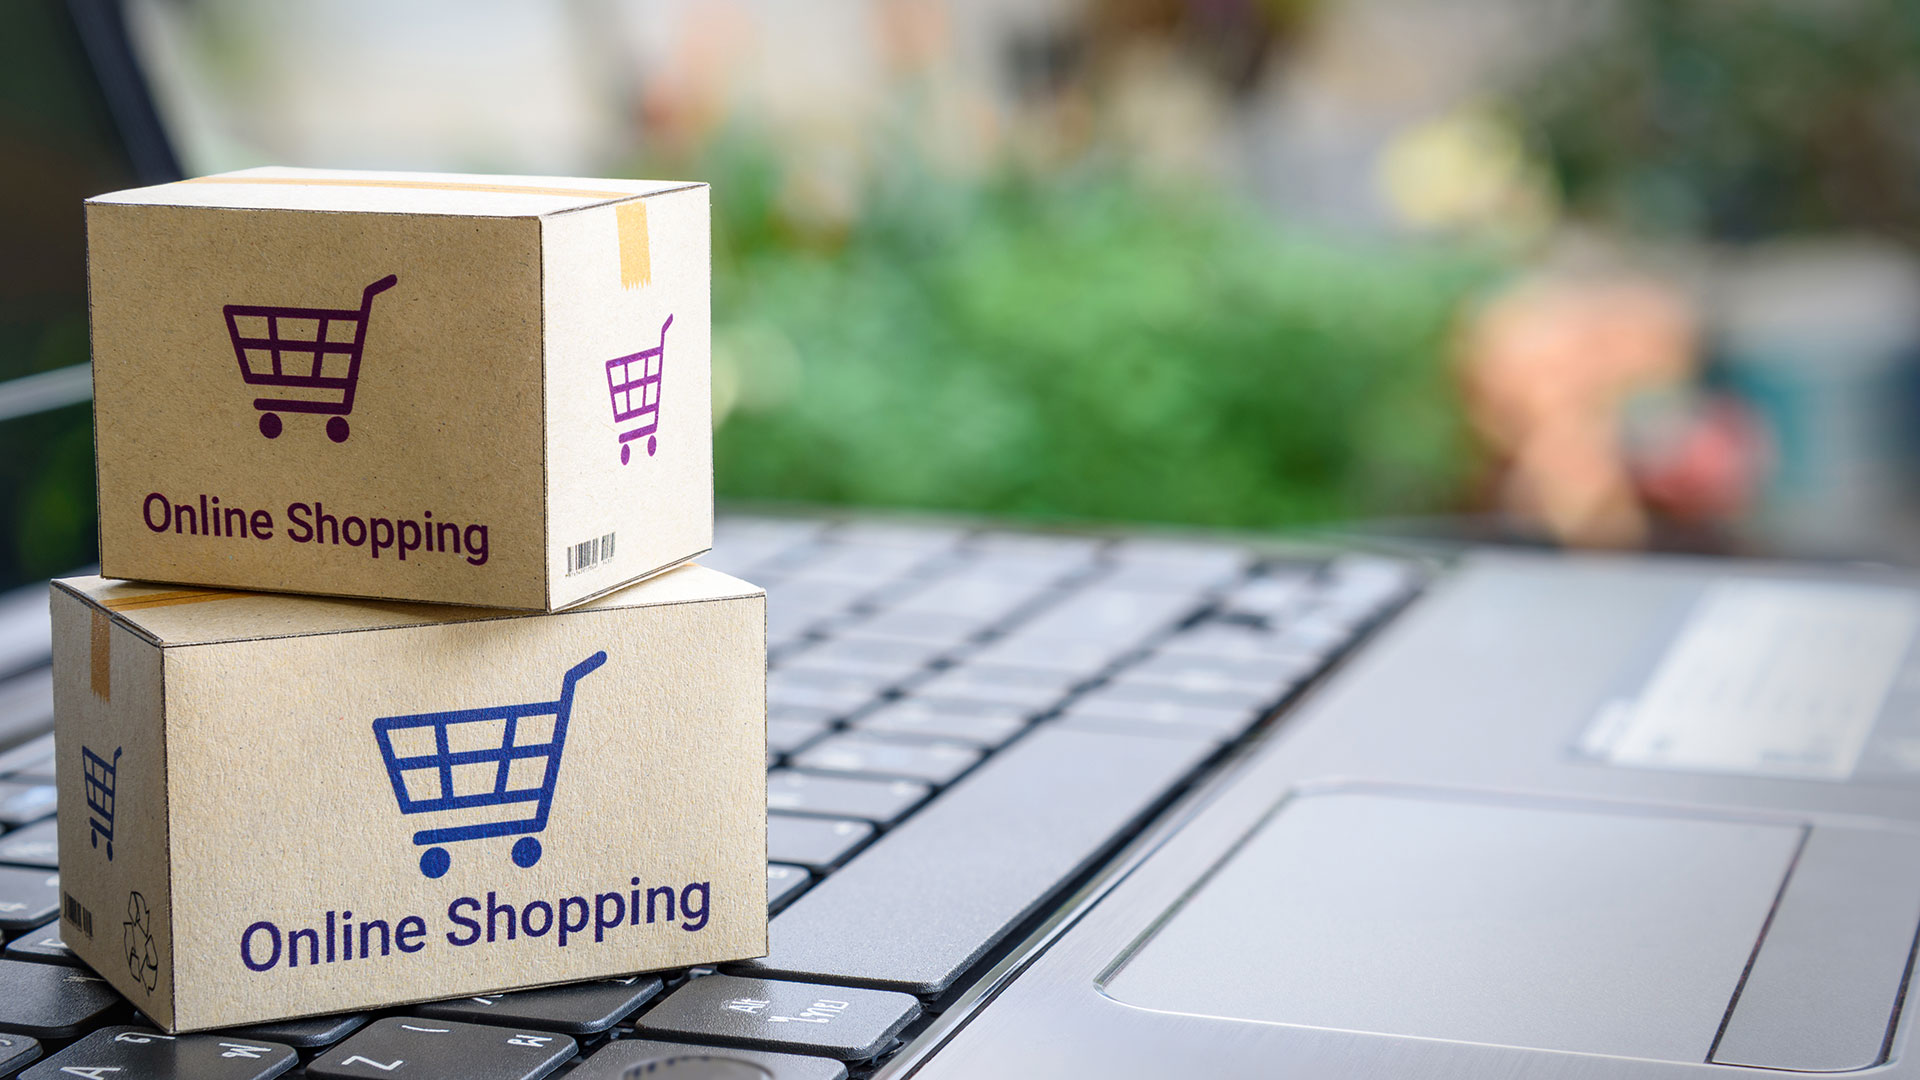 Toy Shopping Boxes as a Symbol of E-Shopping as the Latest Ecommerce Trend